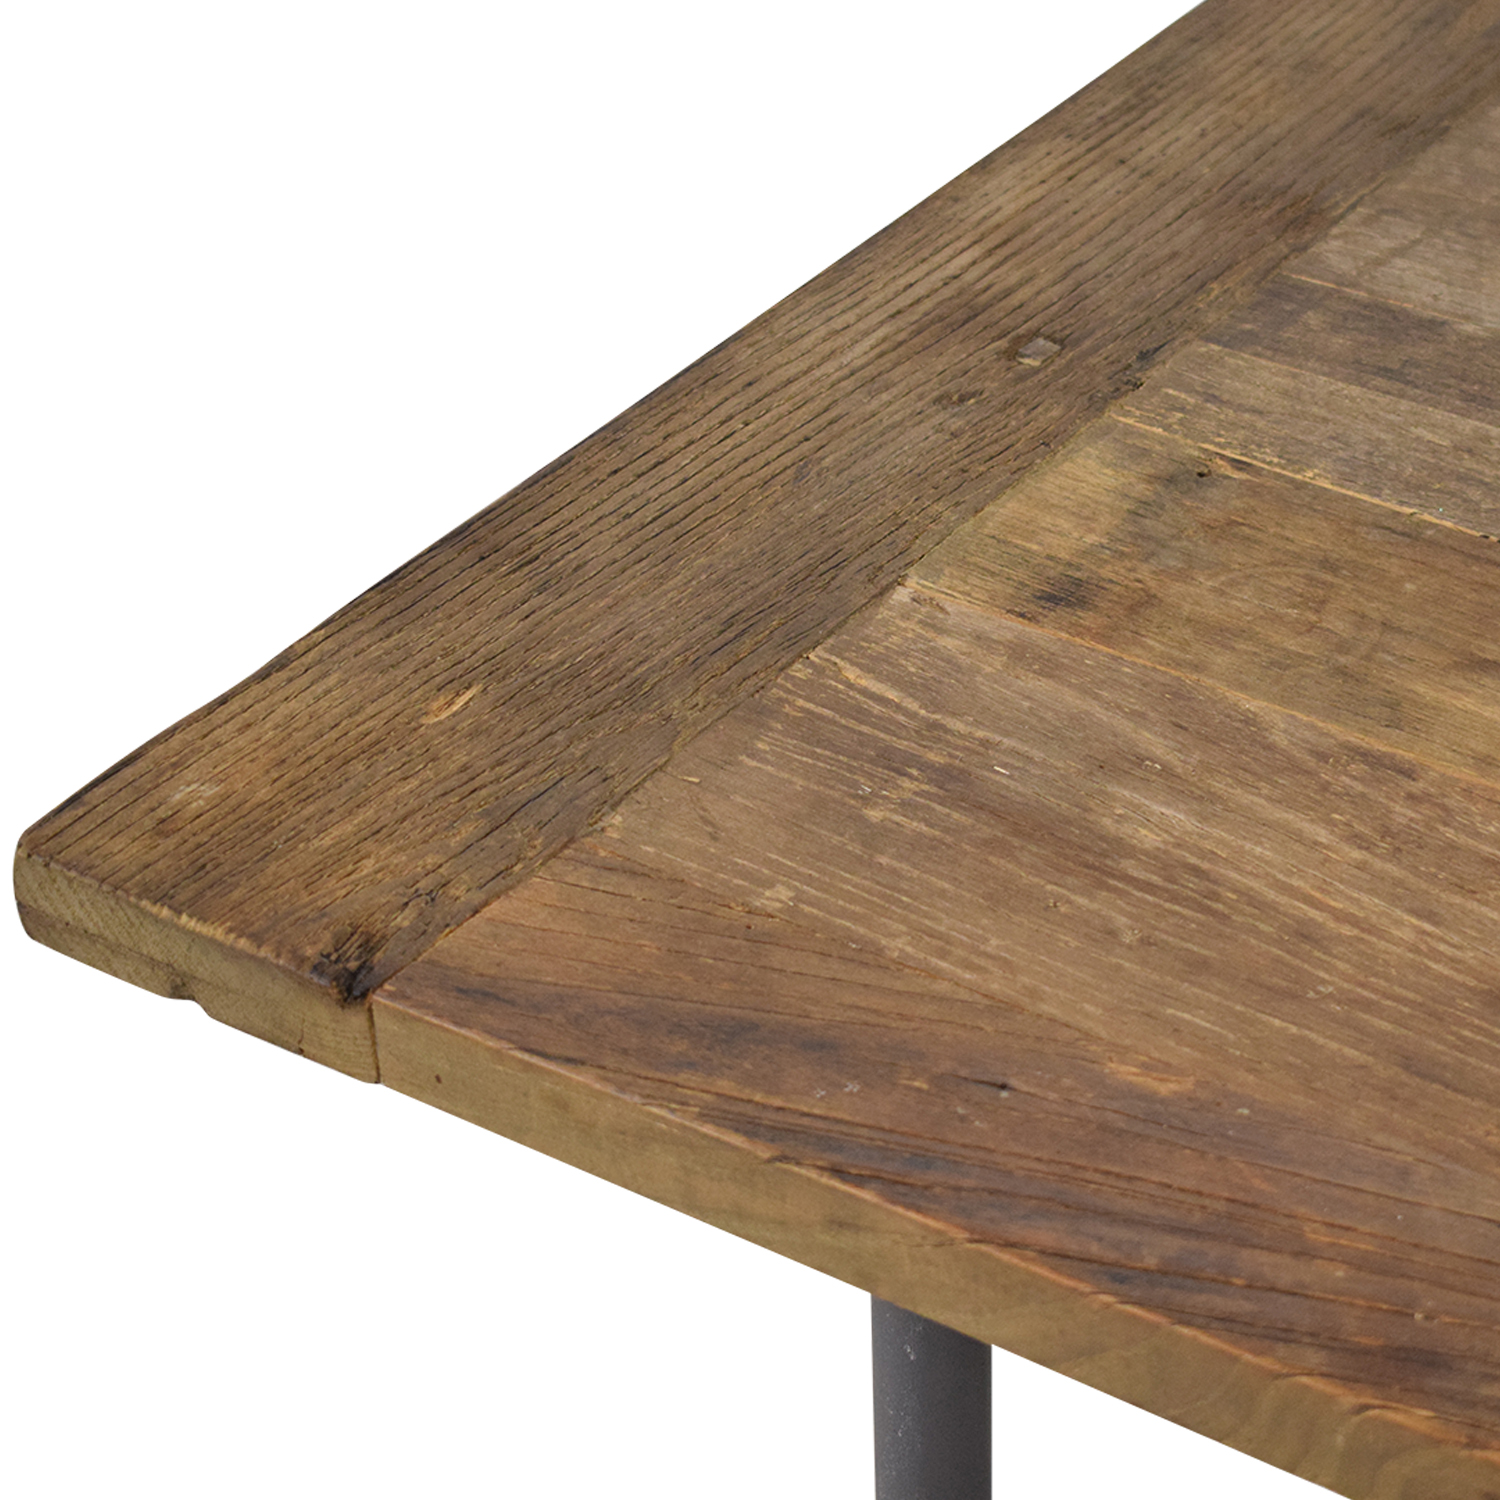 Restoration Hardware Restoration Hardware Flatiron Rectangular Dining Table brown and silver